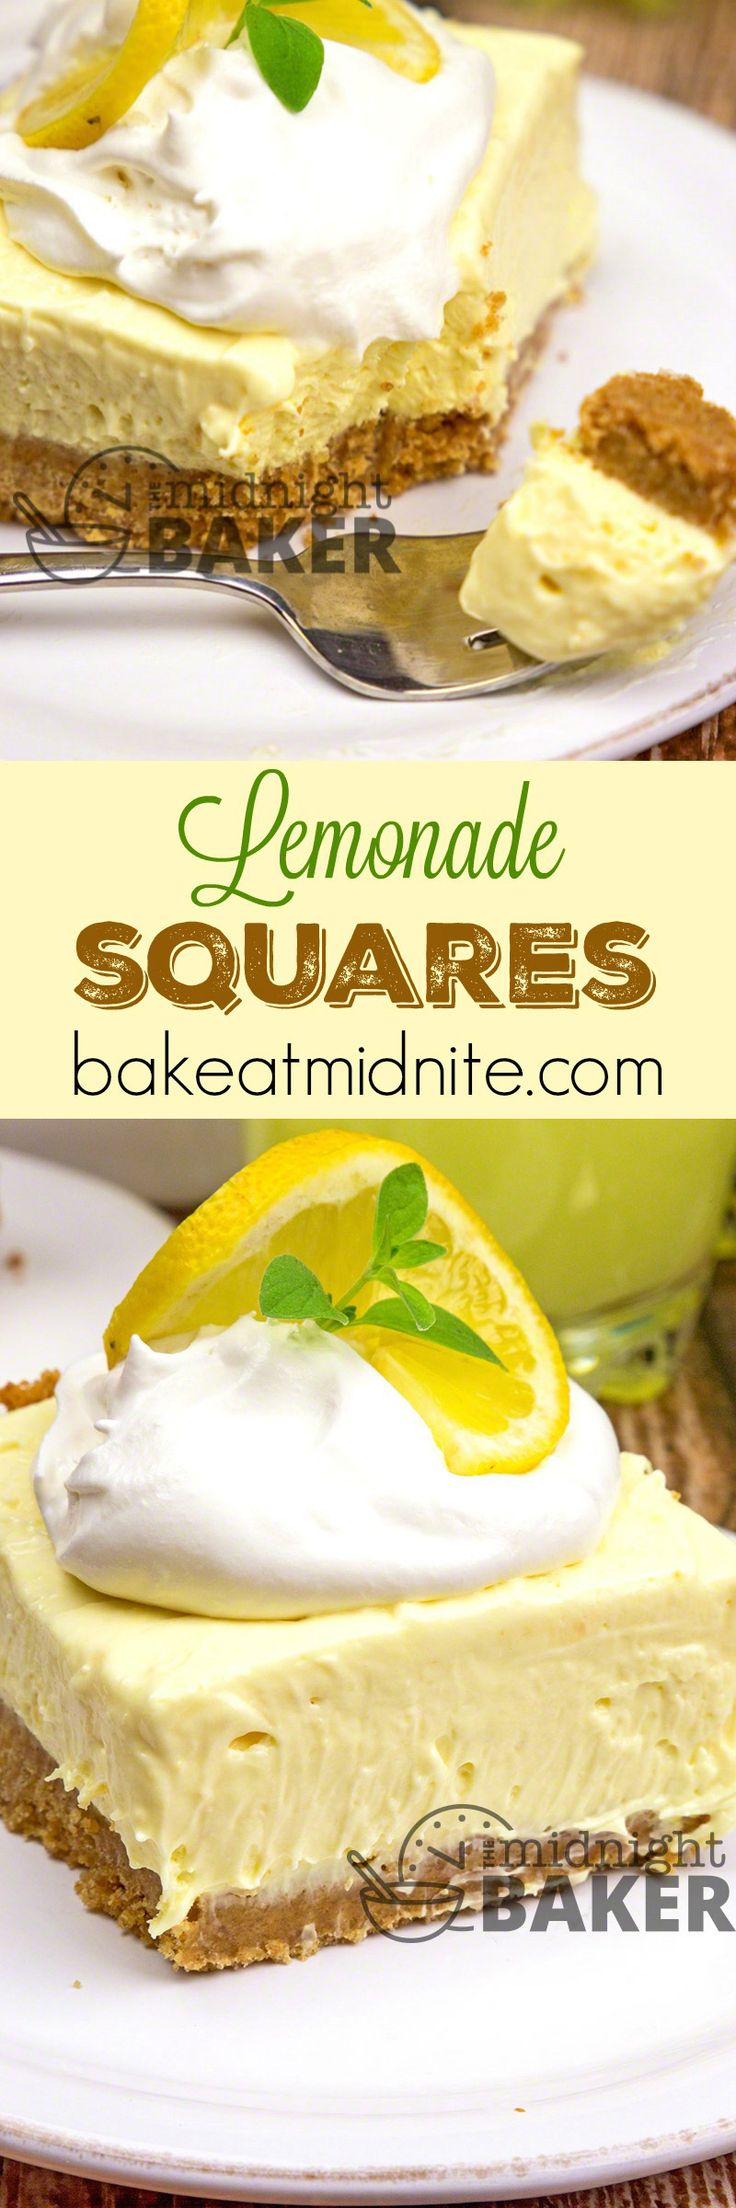 These lemonade squares are bursting with sunny lemon flavor. Very refreshing and…